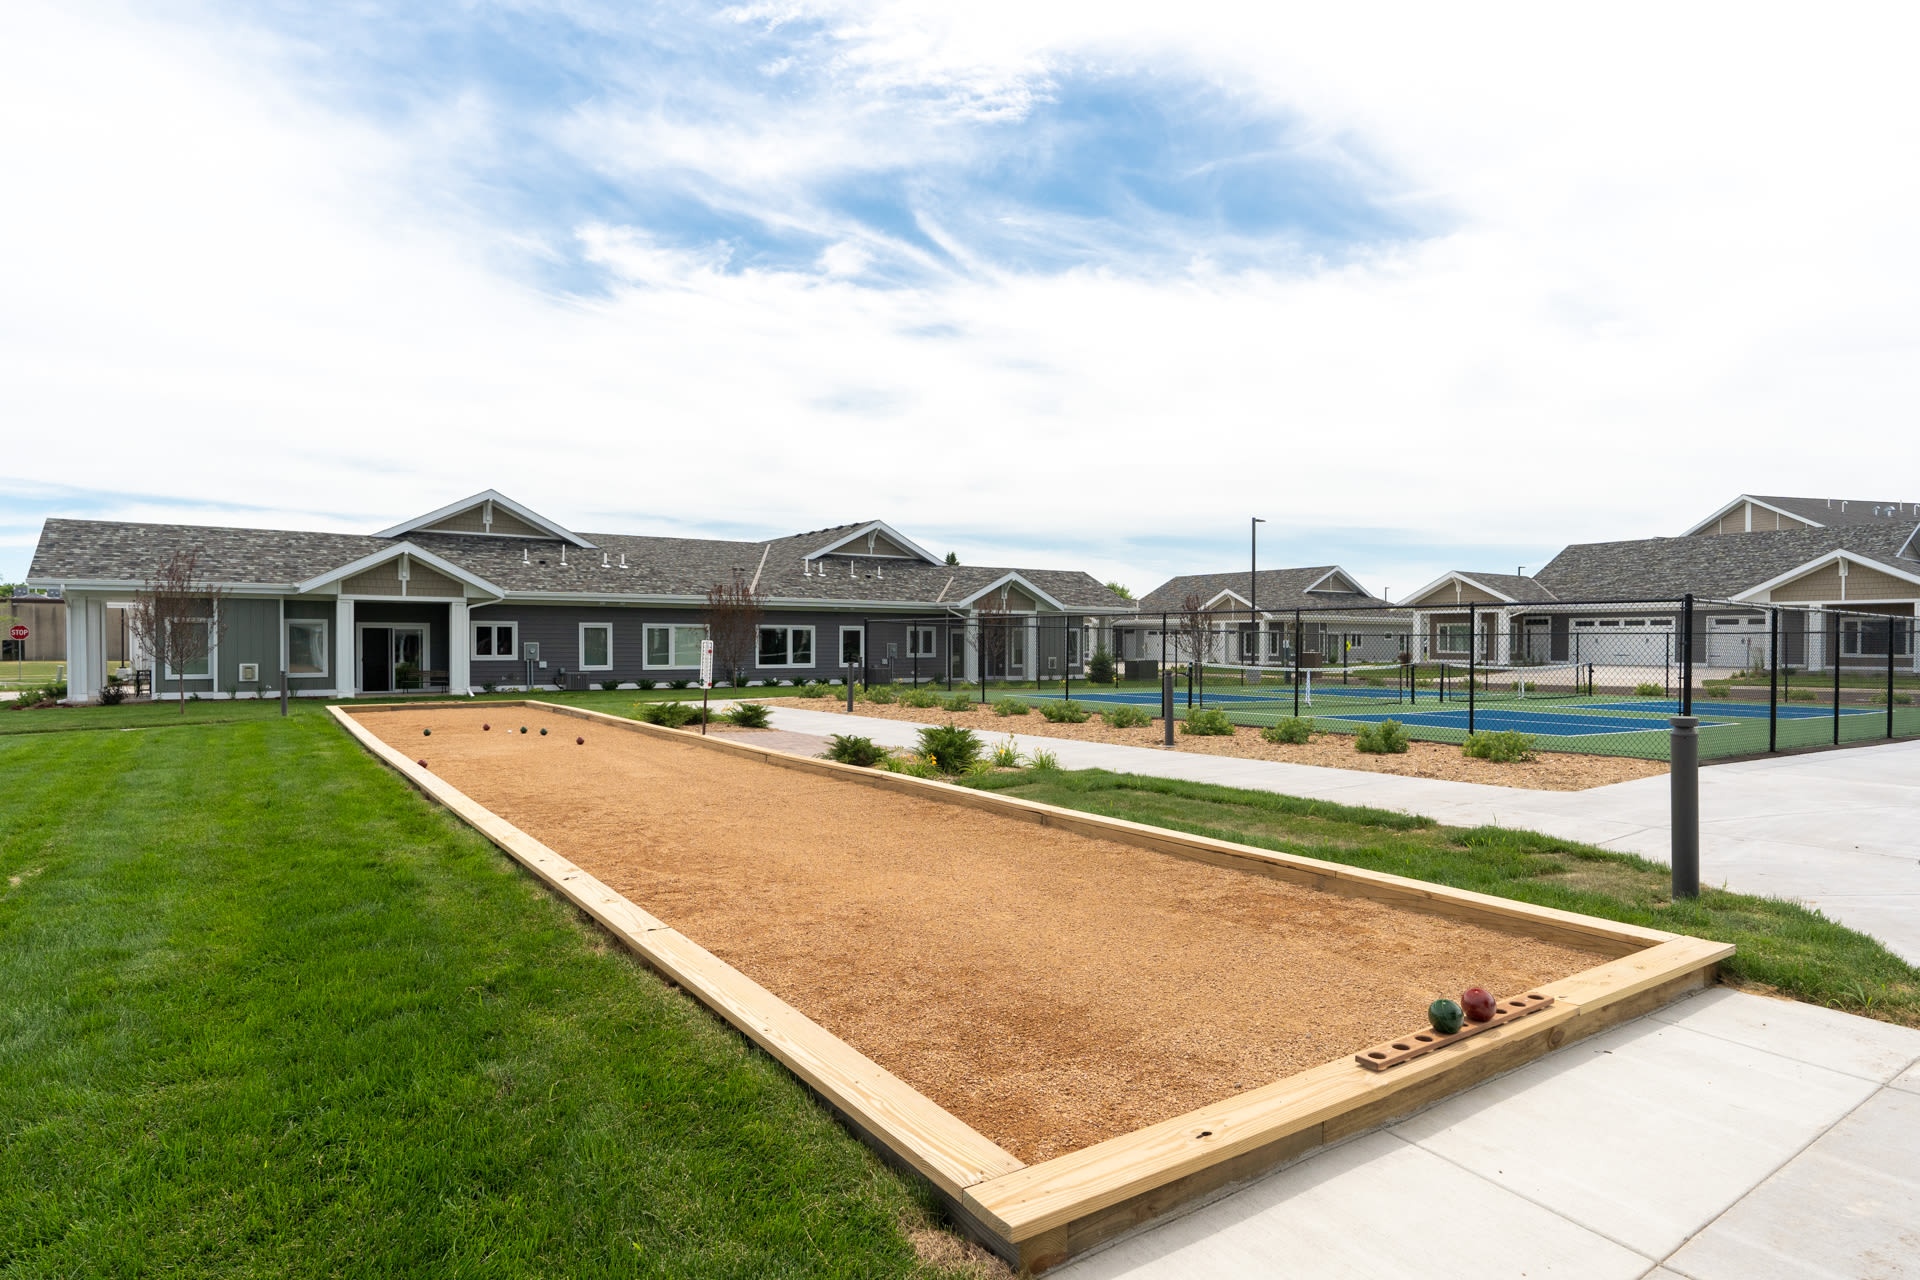 Pickle ball court and grass at The Fields at Arbor Glen in Lake Elmo, Minnesota